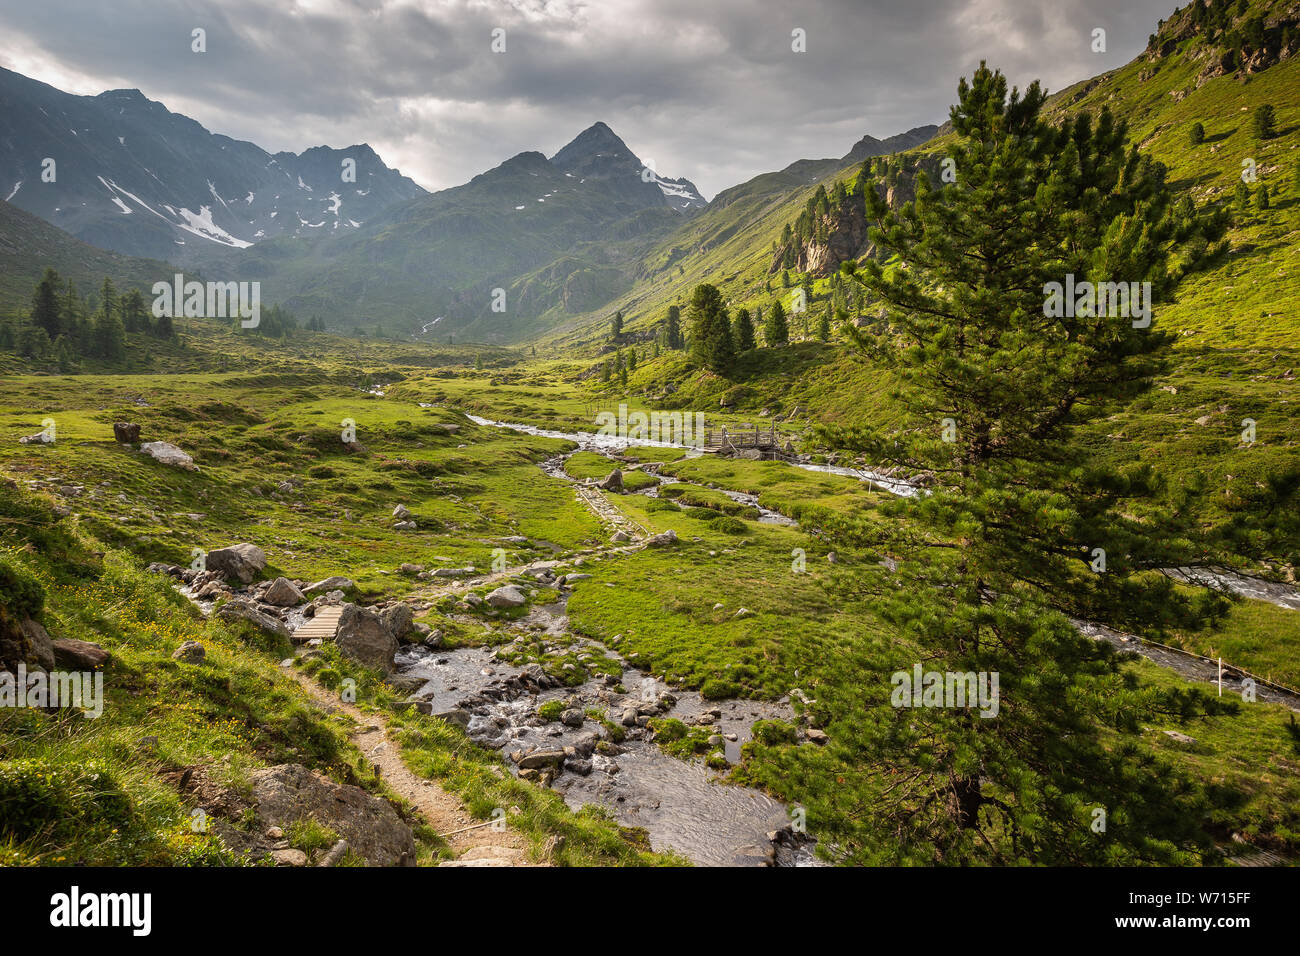 Debanttal.(Lienzer). Alpine landscape. Schobergruppe mountain massif. . Hohe Tauern National Park. Austria. Stock Photo